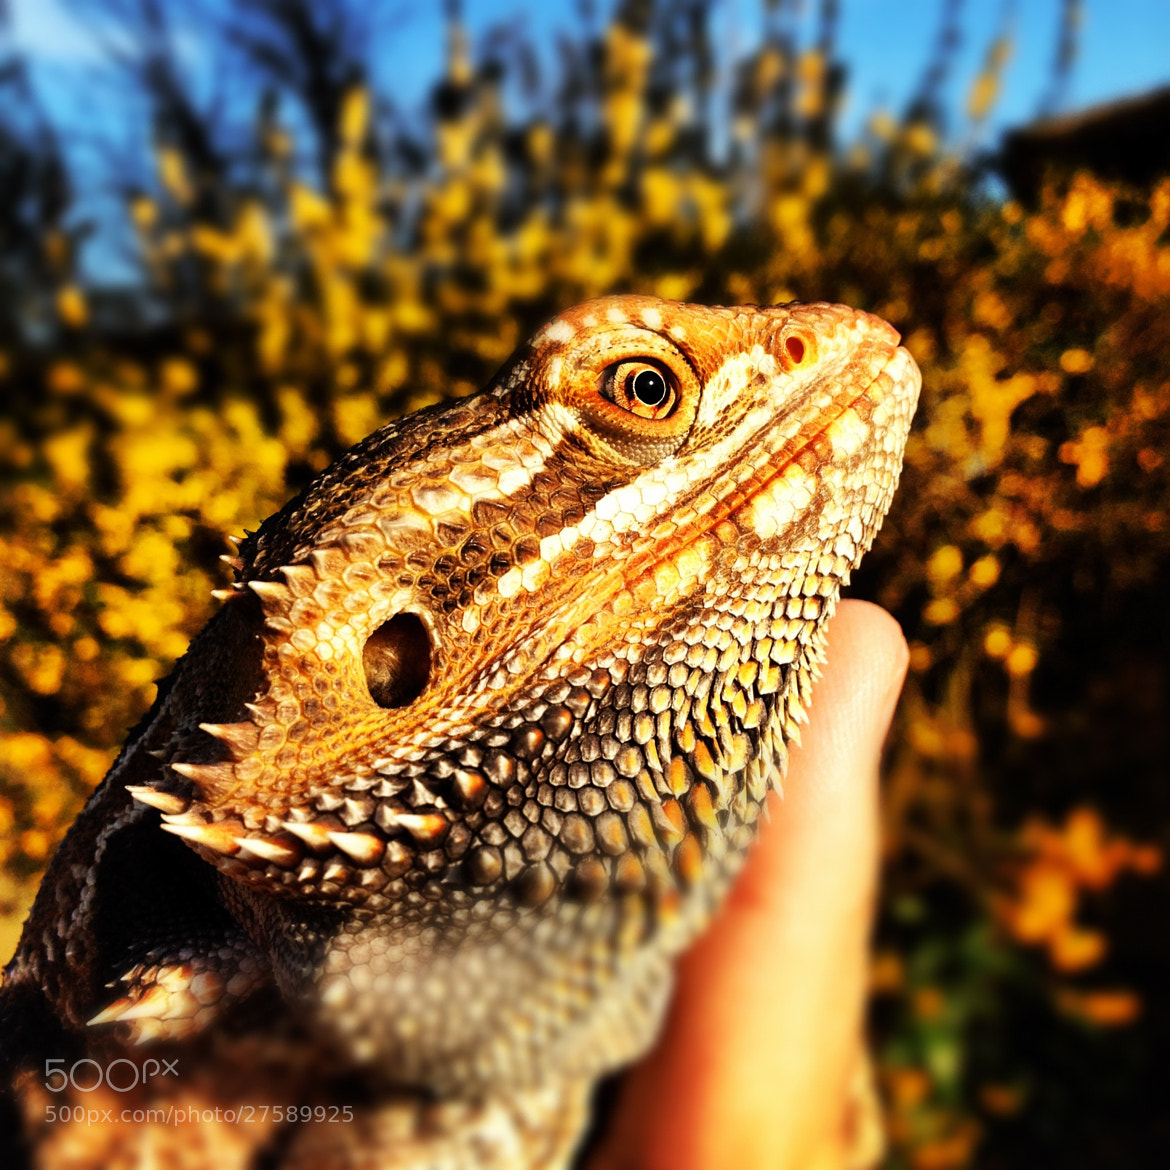 Photograph Lizard Portrait 2 by Dave Hornsby on 500px